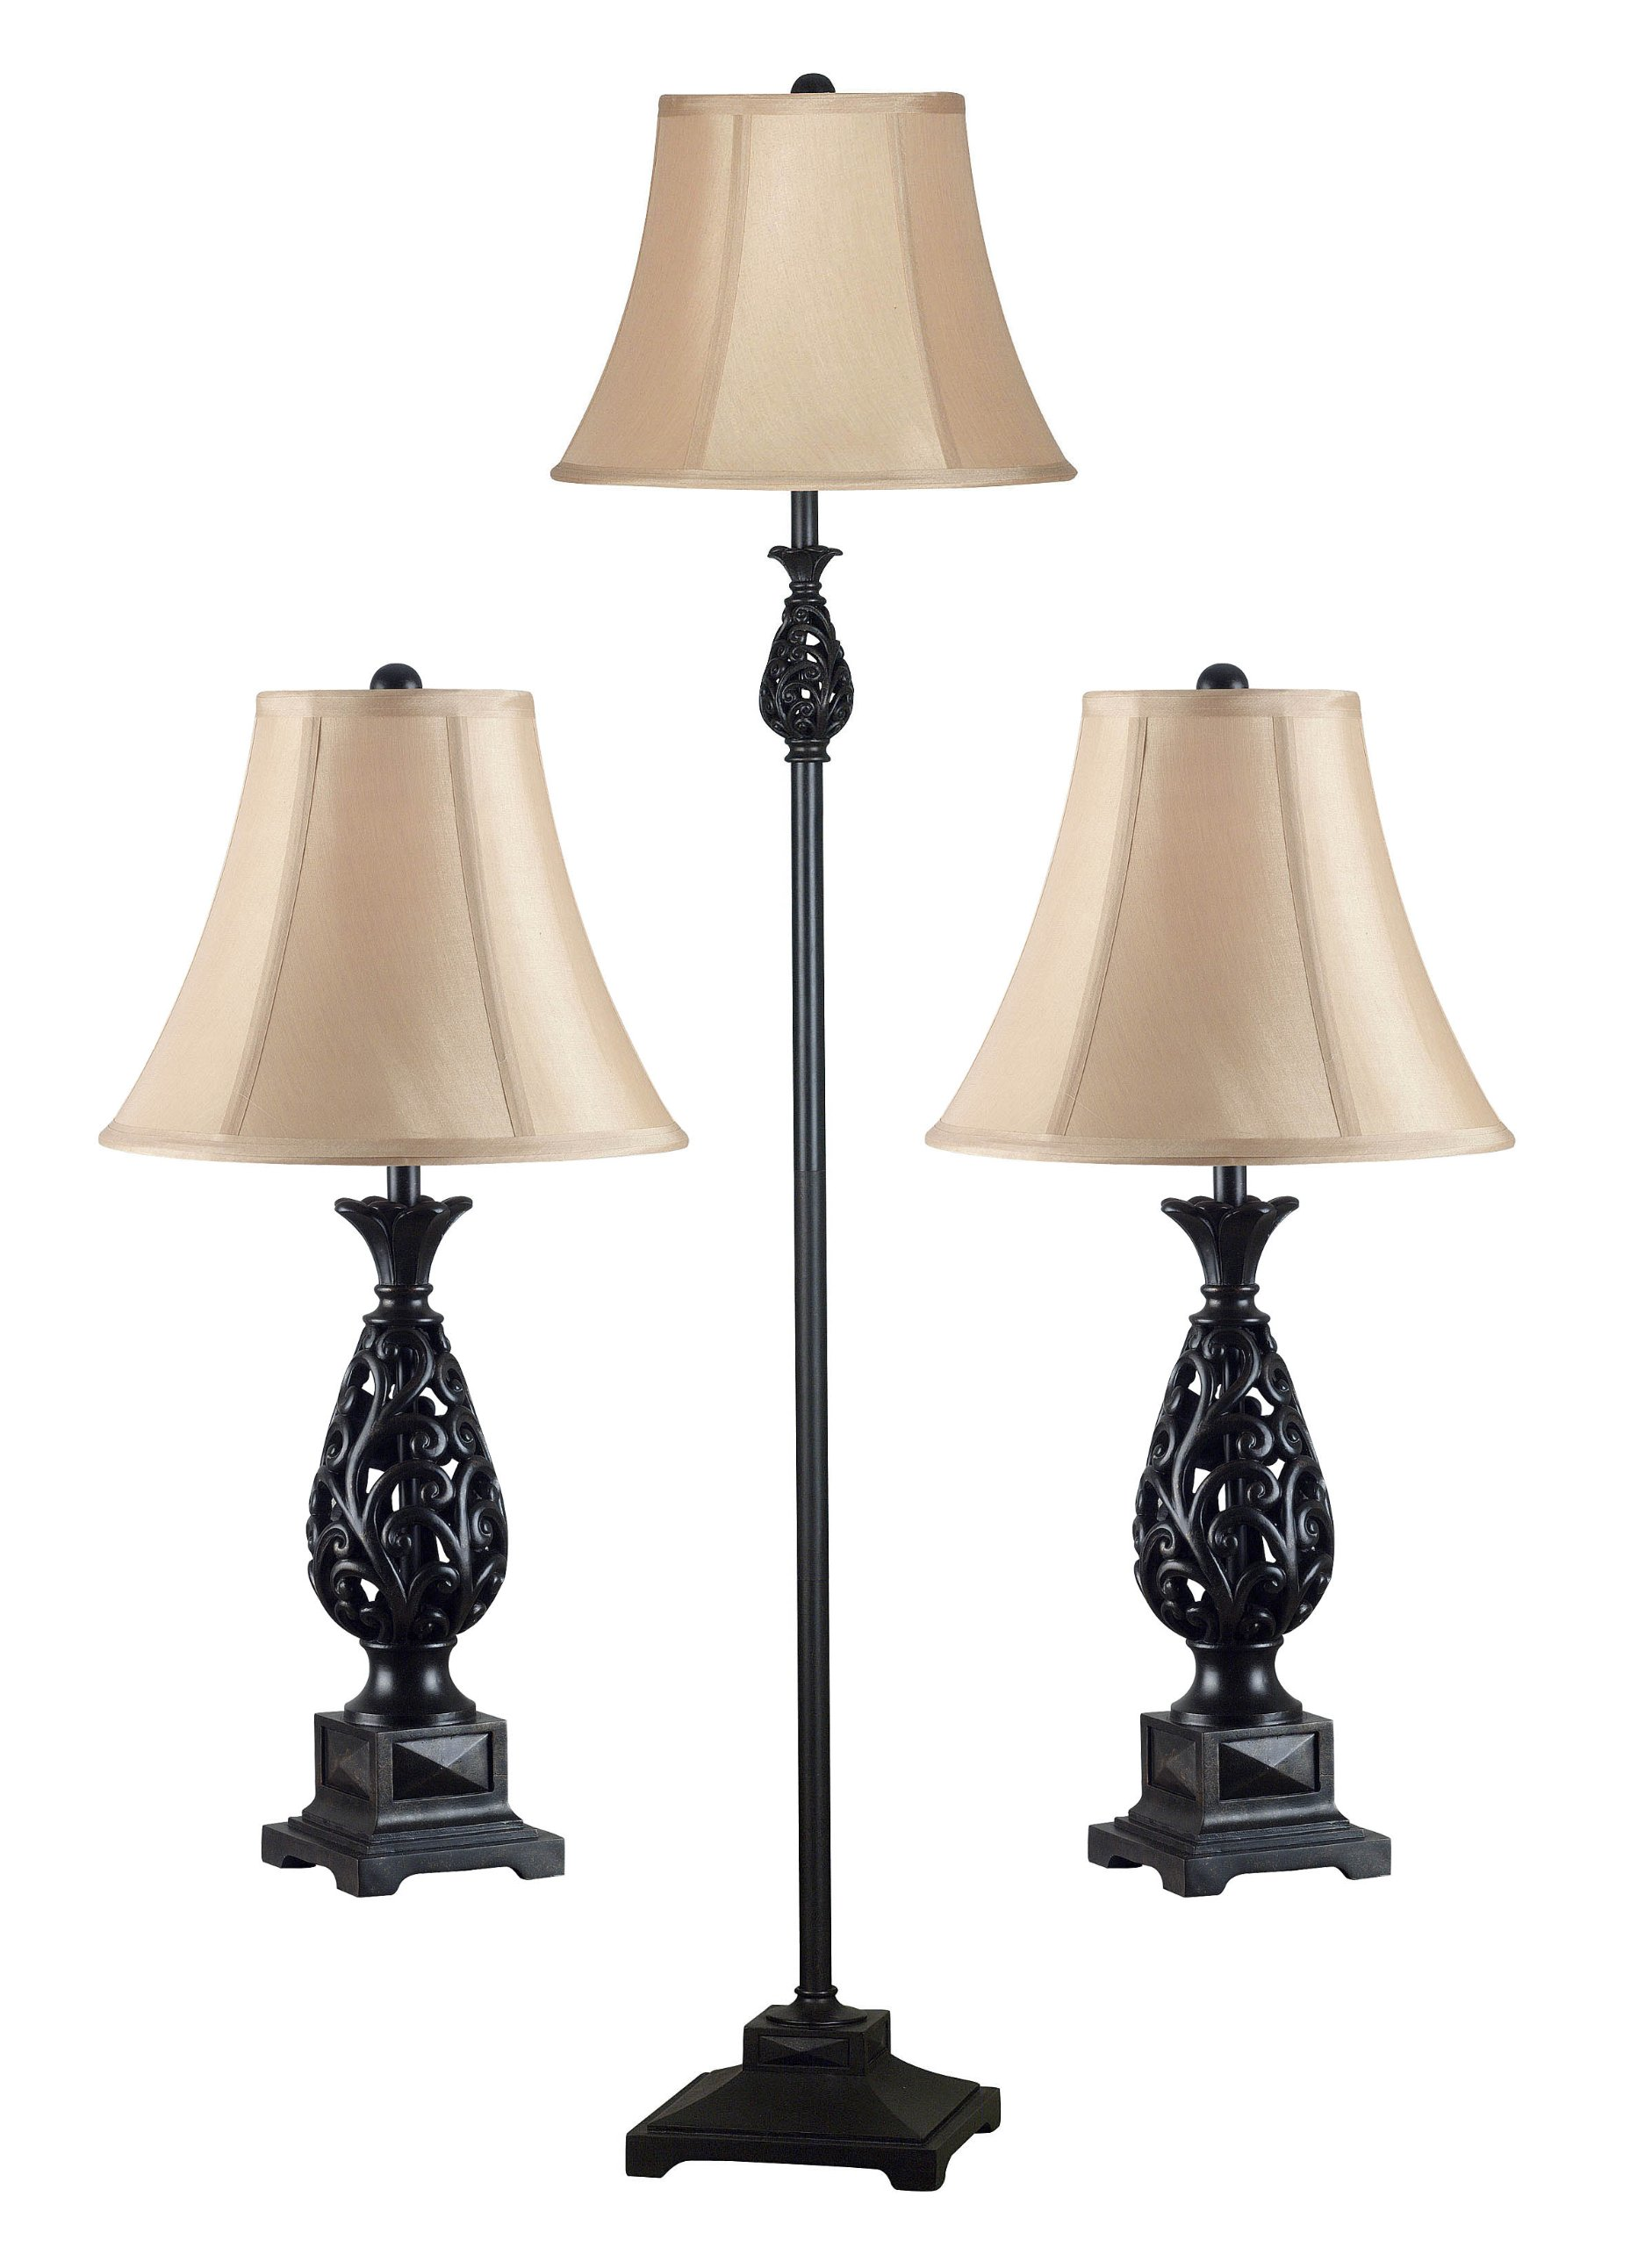 Kenroy Home 21017GFBR Prescott Table and Floor Lamp, 3 Pack, Golden Flecked Bronze by Kenroy Home